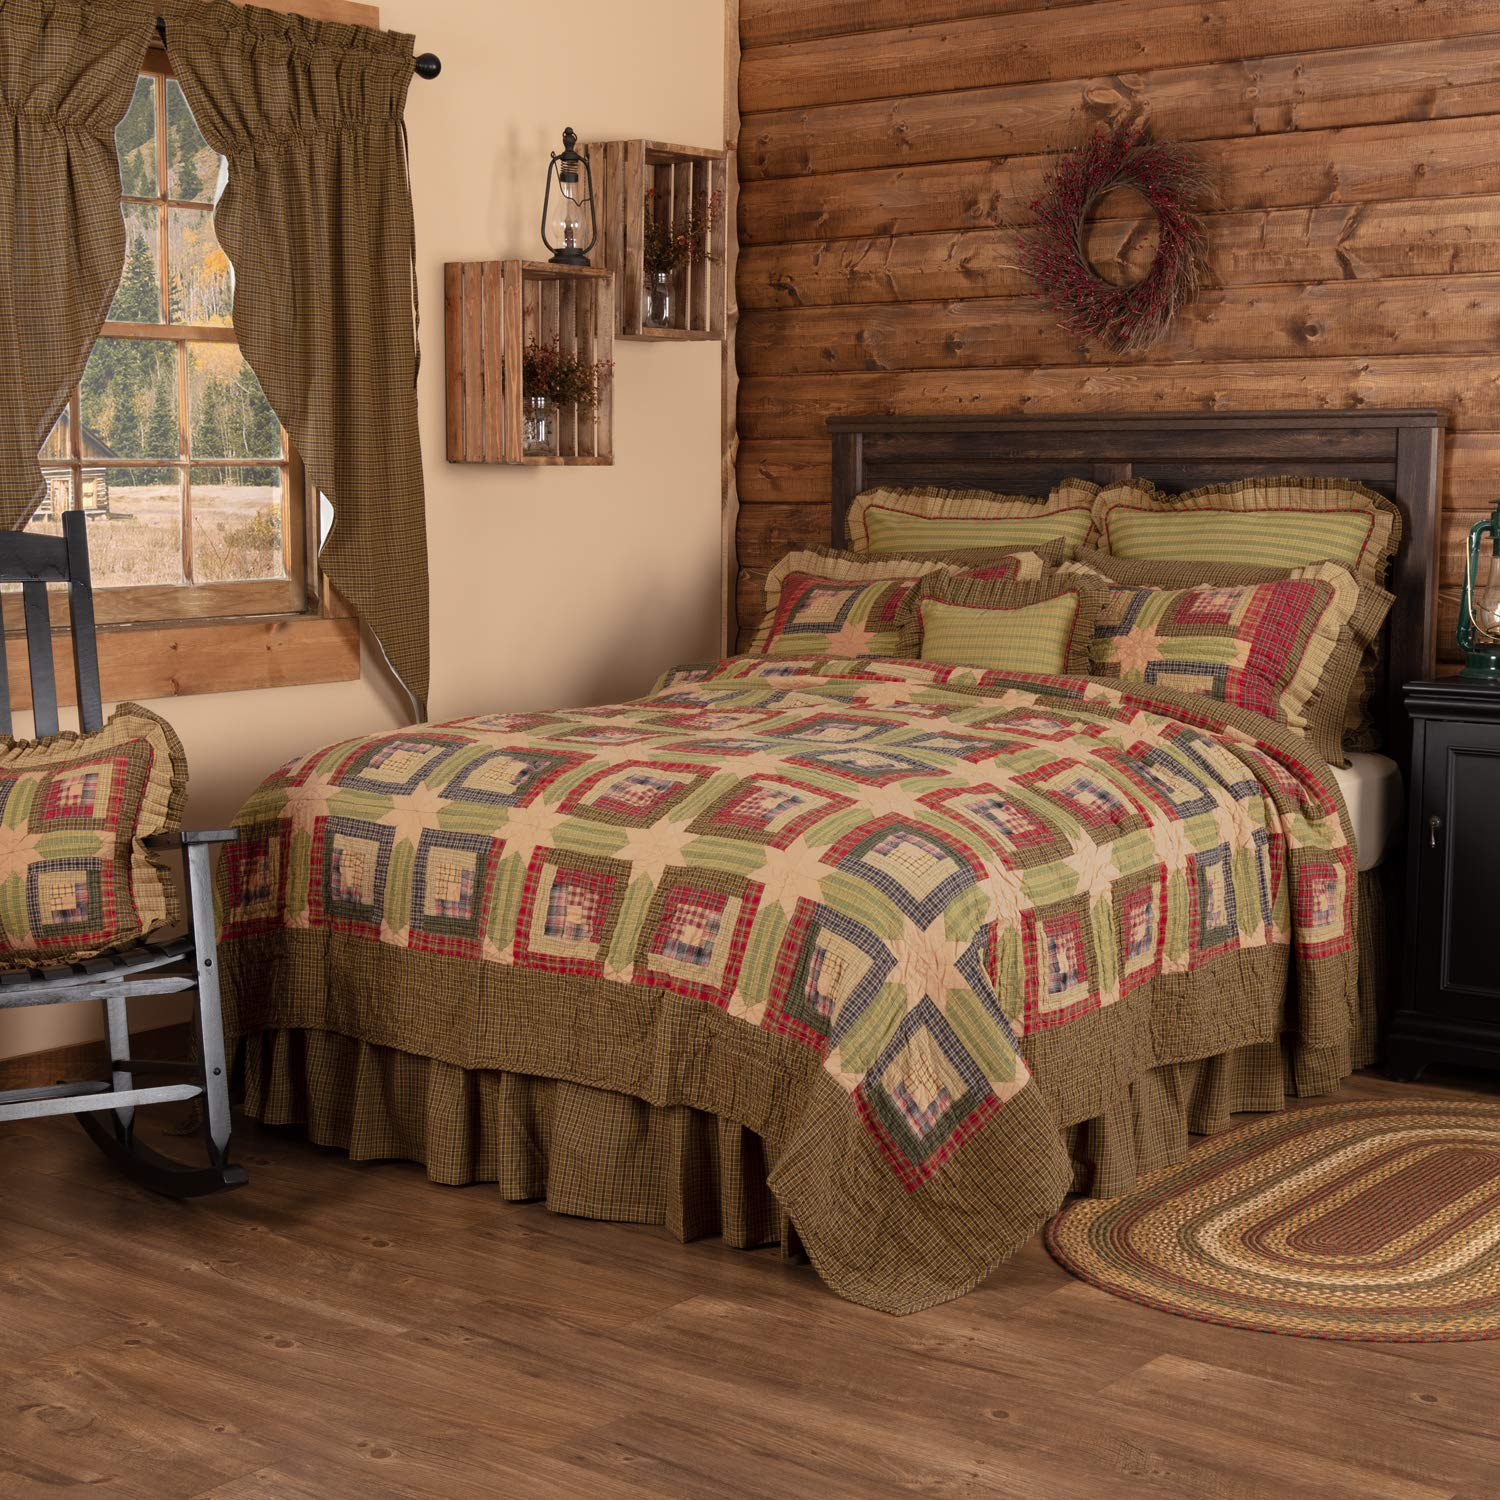 VHC Brands Rustic & Lodge Bedding - Tea Cabin Green Quilt, Queen